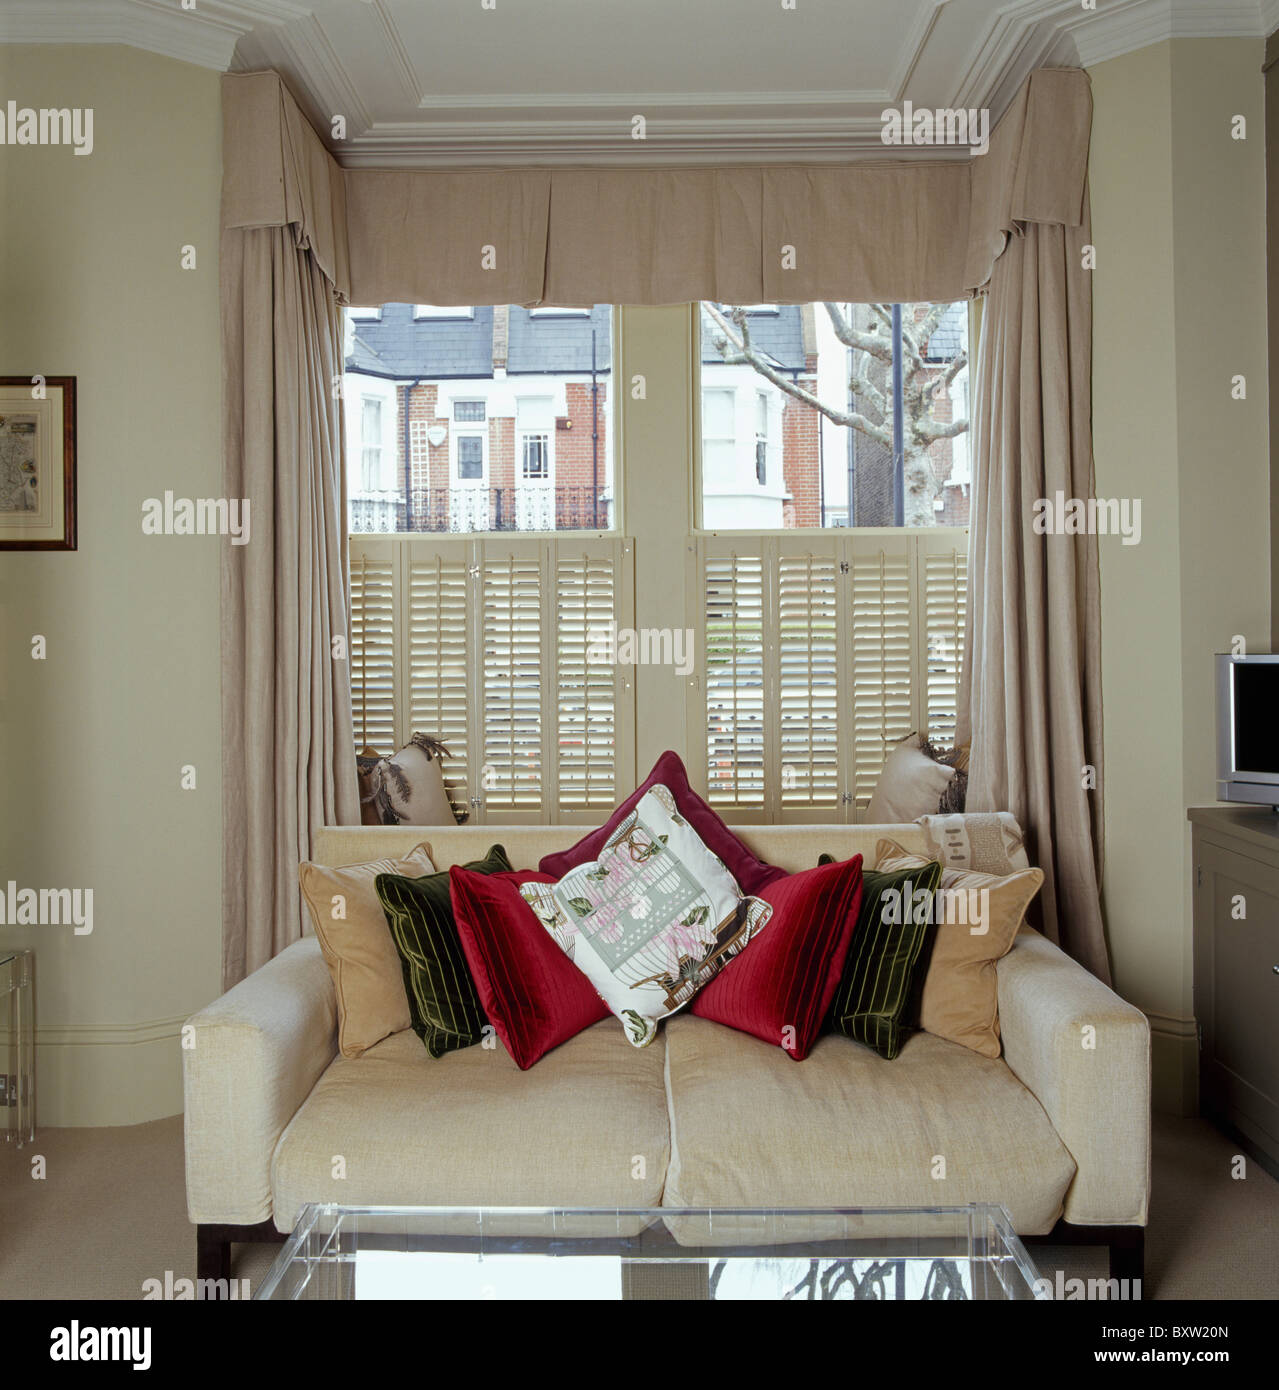 Cream Sofa Piled With Cushions In Front Of Window With Beige